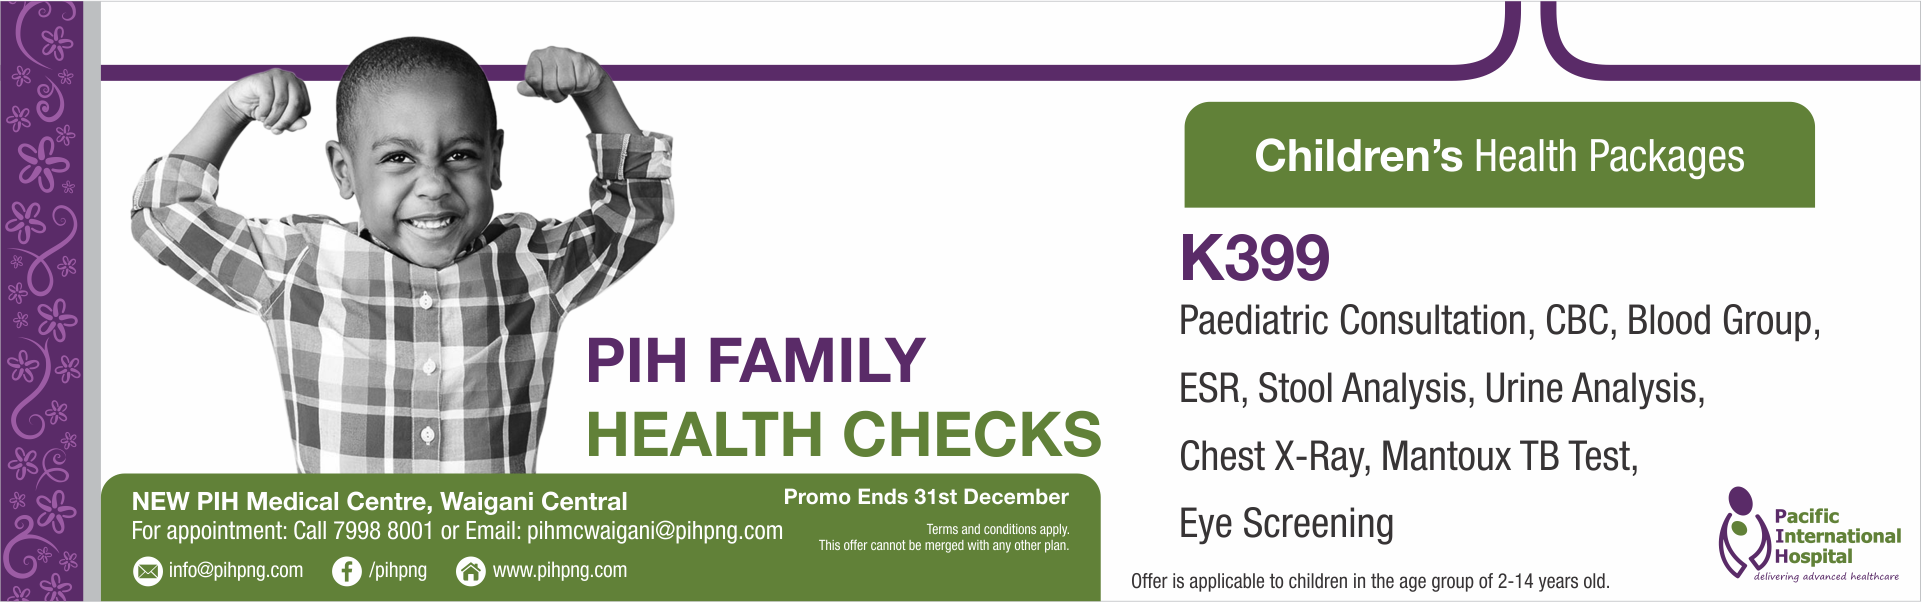 Childrens Health Check Package